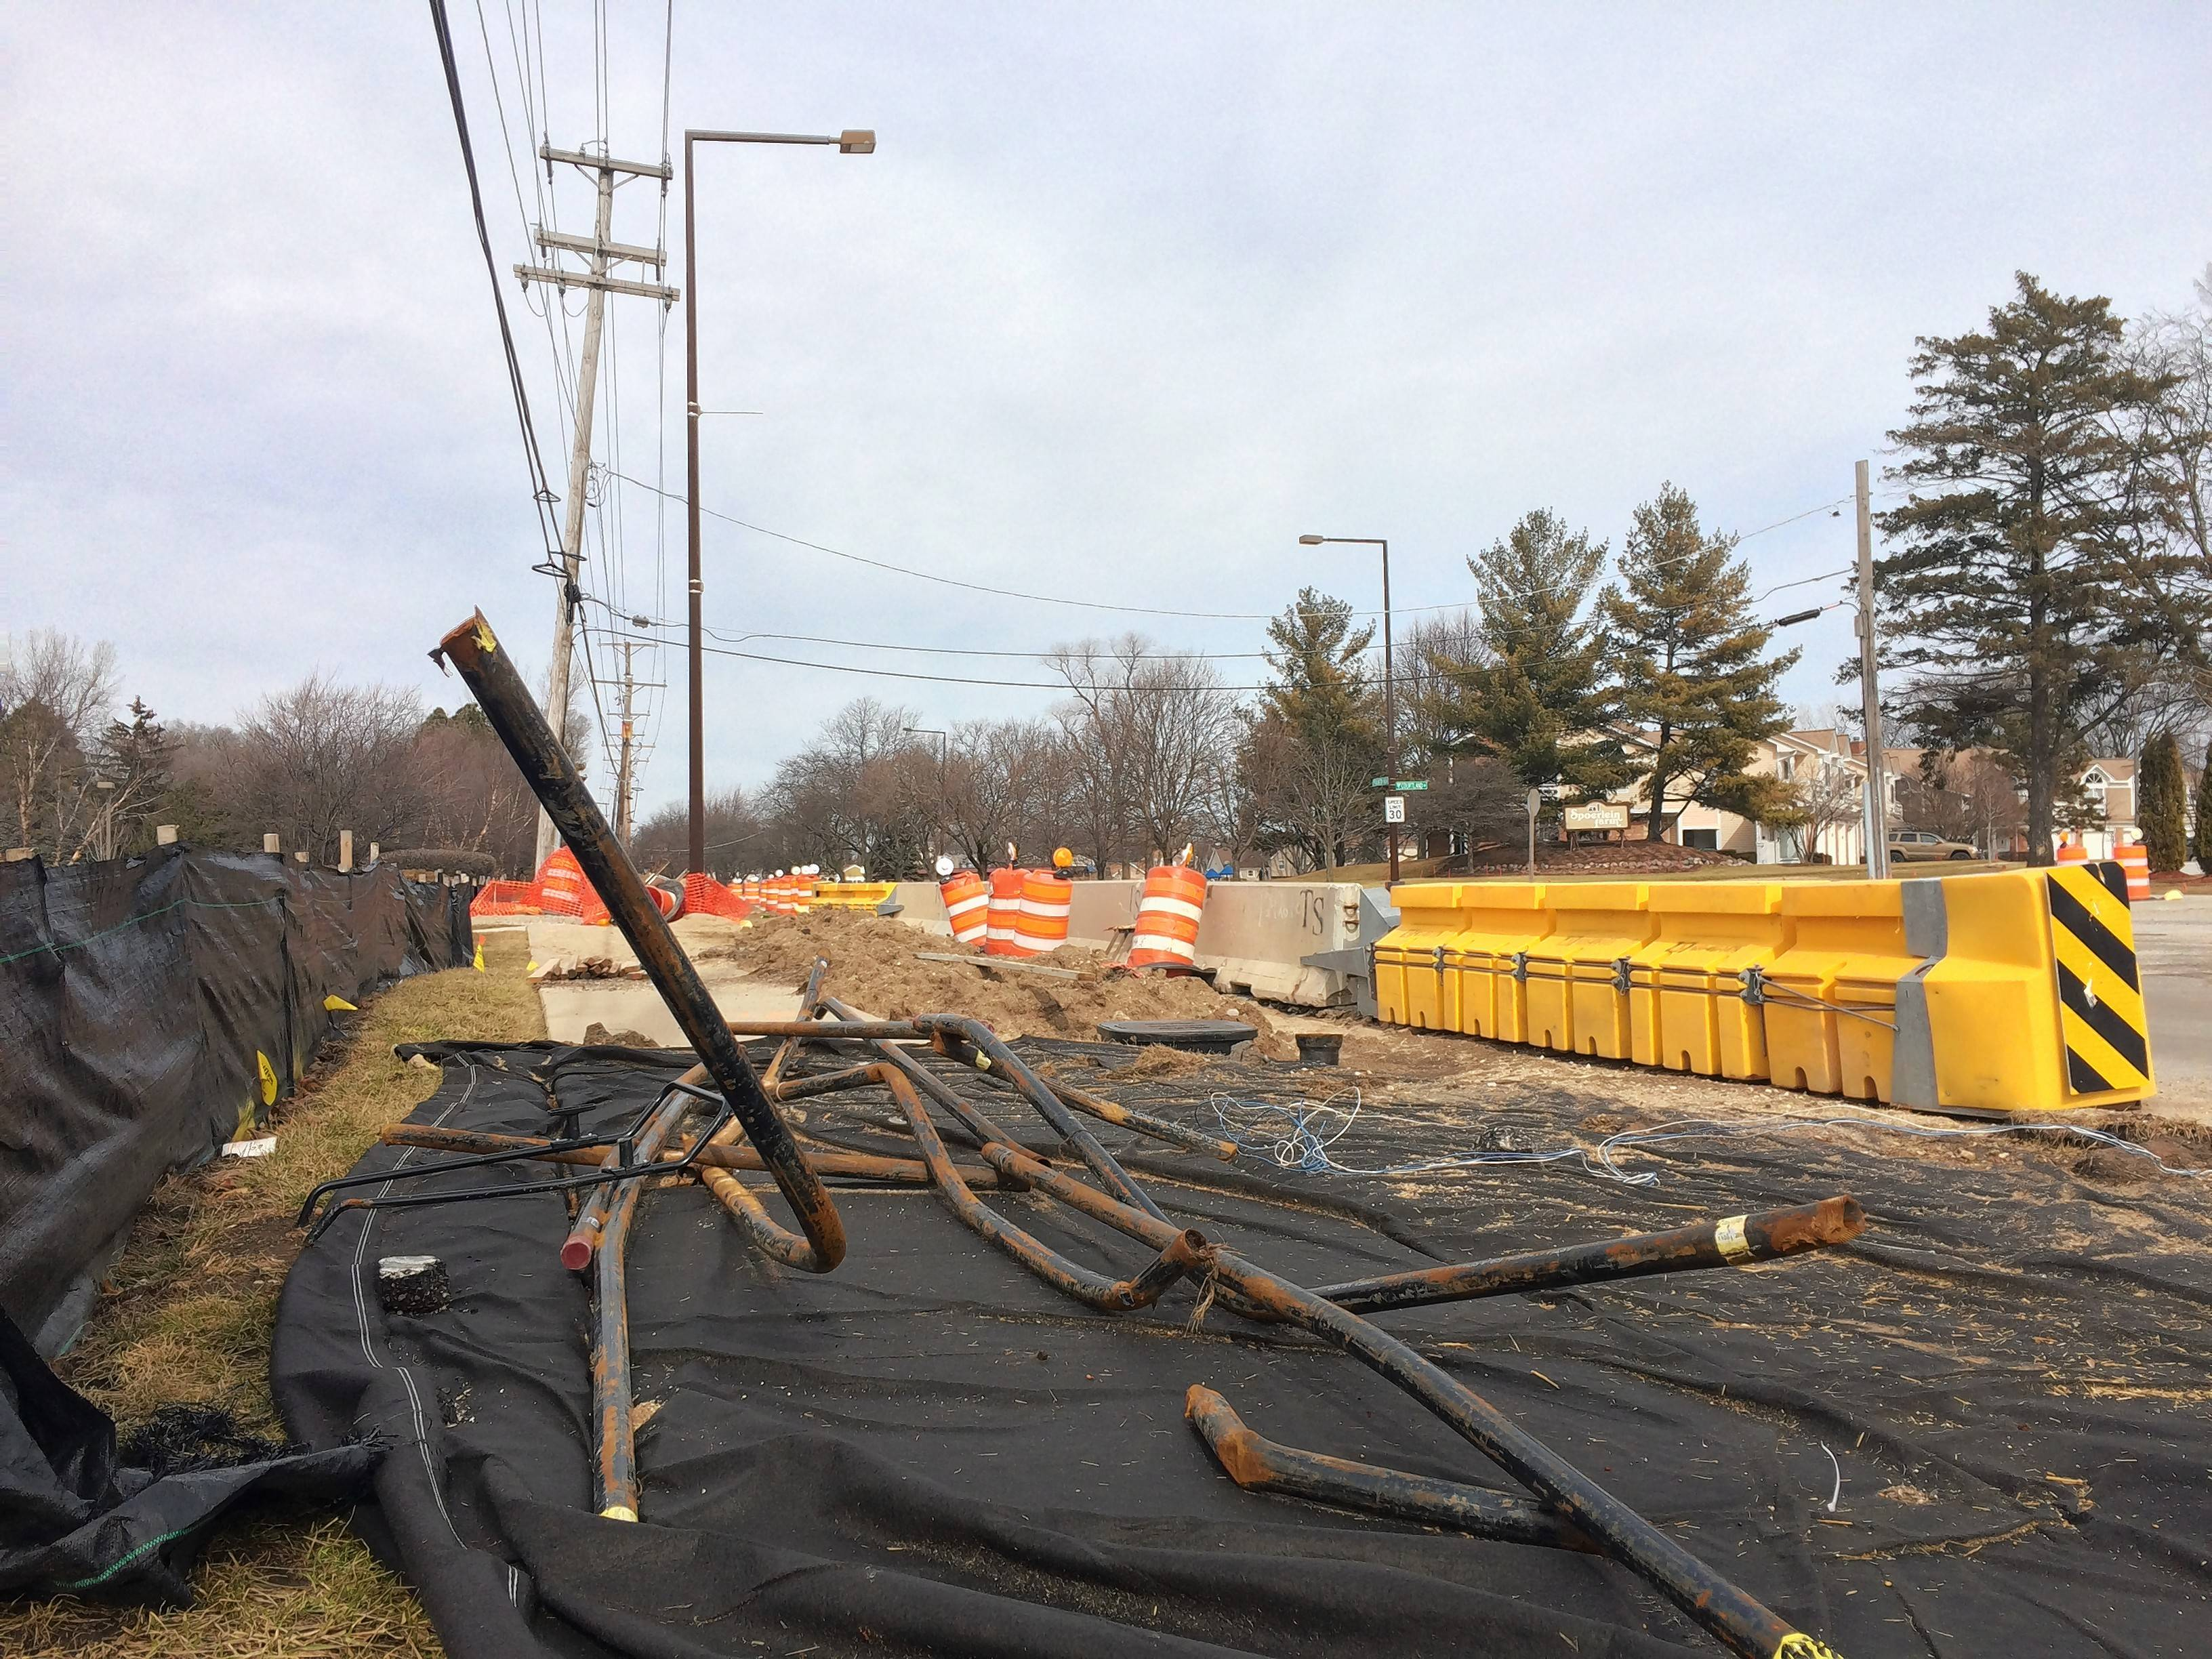 Construction is expected to finish in about four weeks on a pipeline project in Buffalo Grove expected to improve water distribution efficiency to homes in five Northwest suburbs. This work is occurring on the west side of Arlington Heights Road north of Route 83.